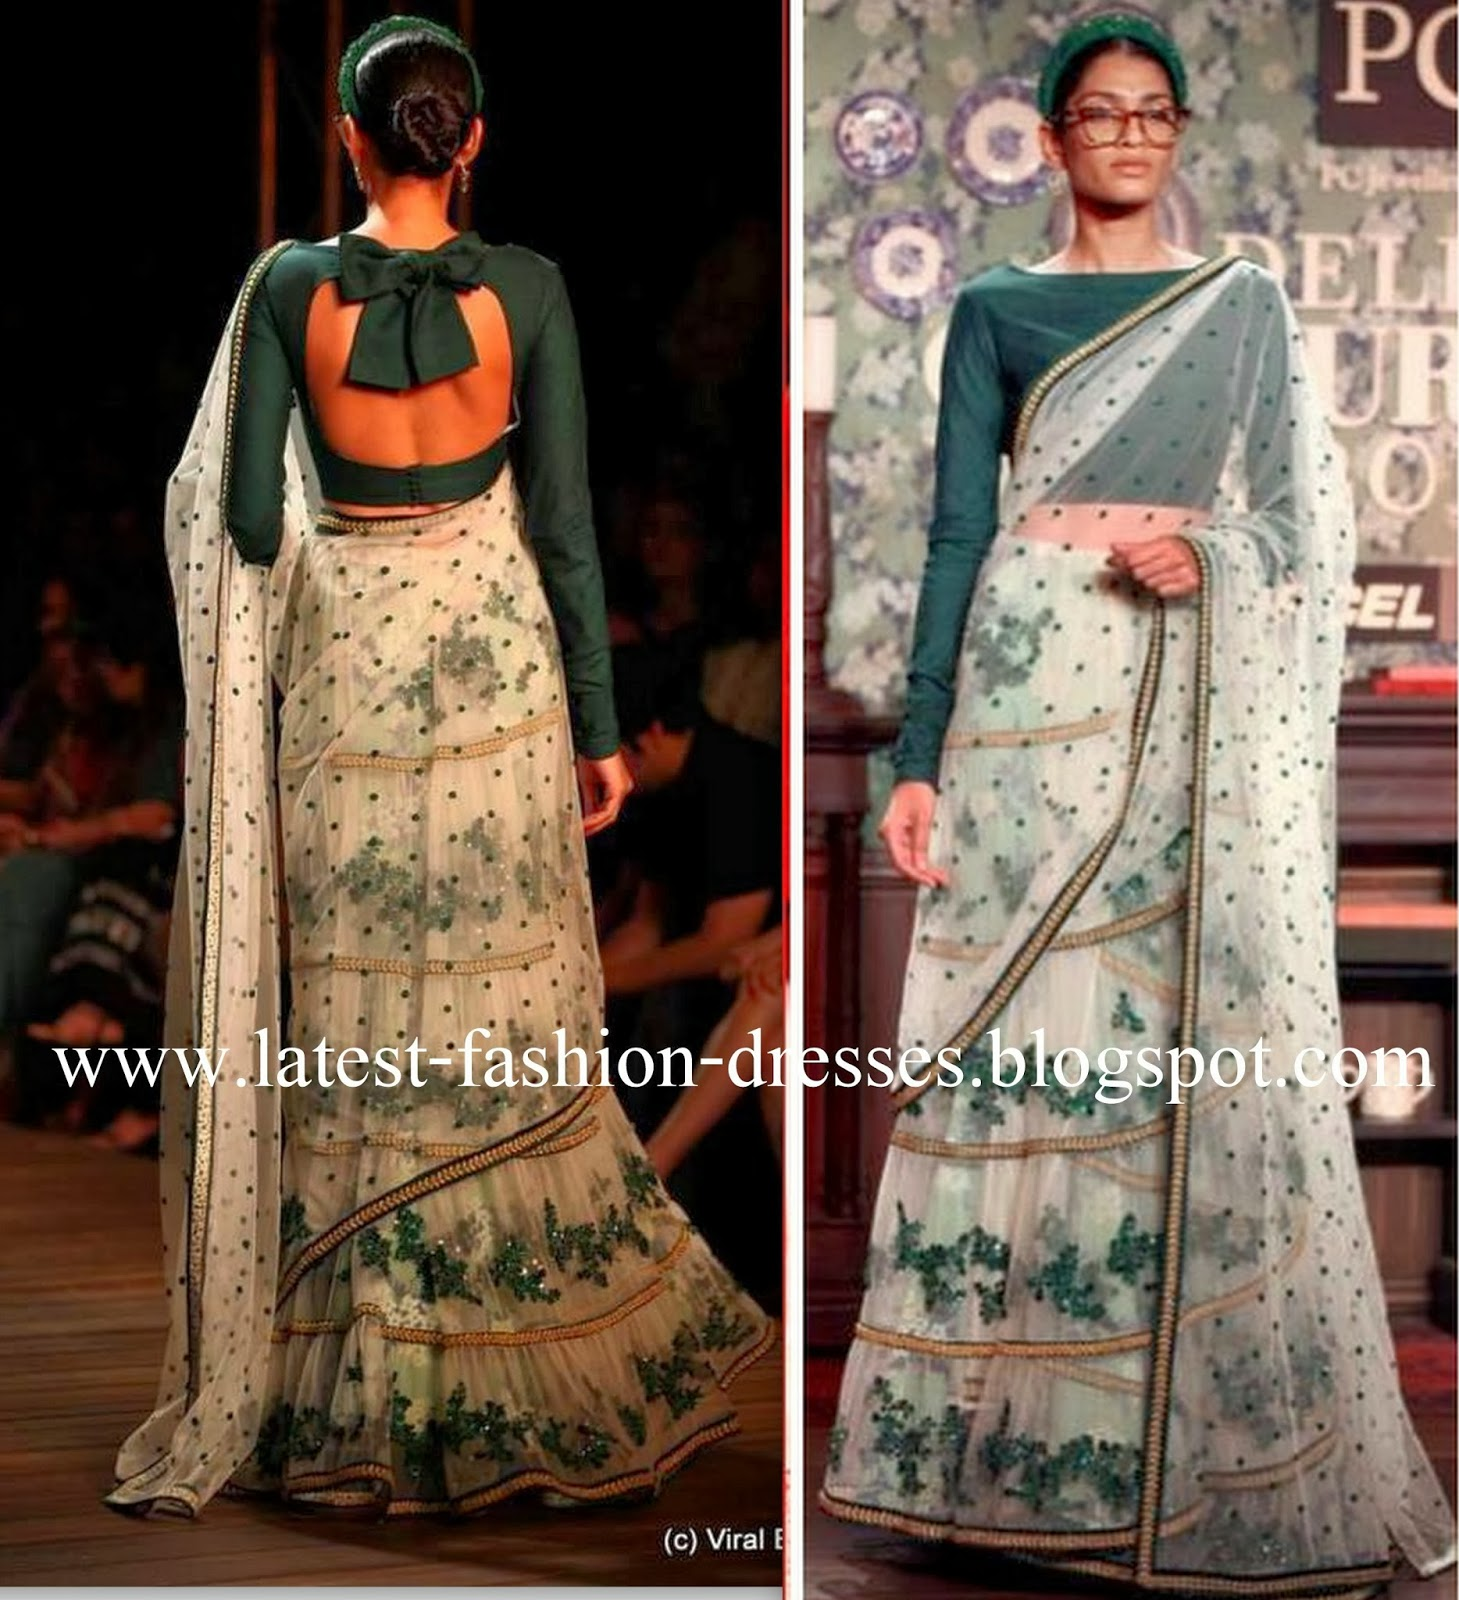 b4412a9eceb LATEST SOUTH INDIAN DESIGNER SAREE AND BLOUSE NECK DESIGNS COLLECTIONS   Sabyasachi Delhi Couture Week fashion model photos